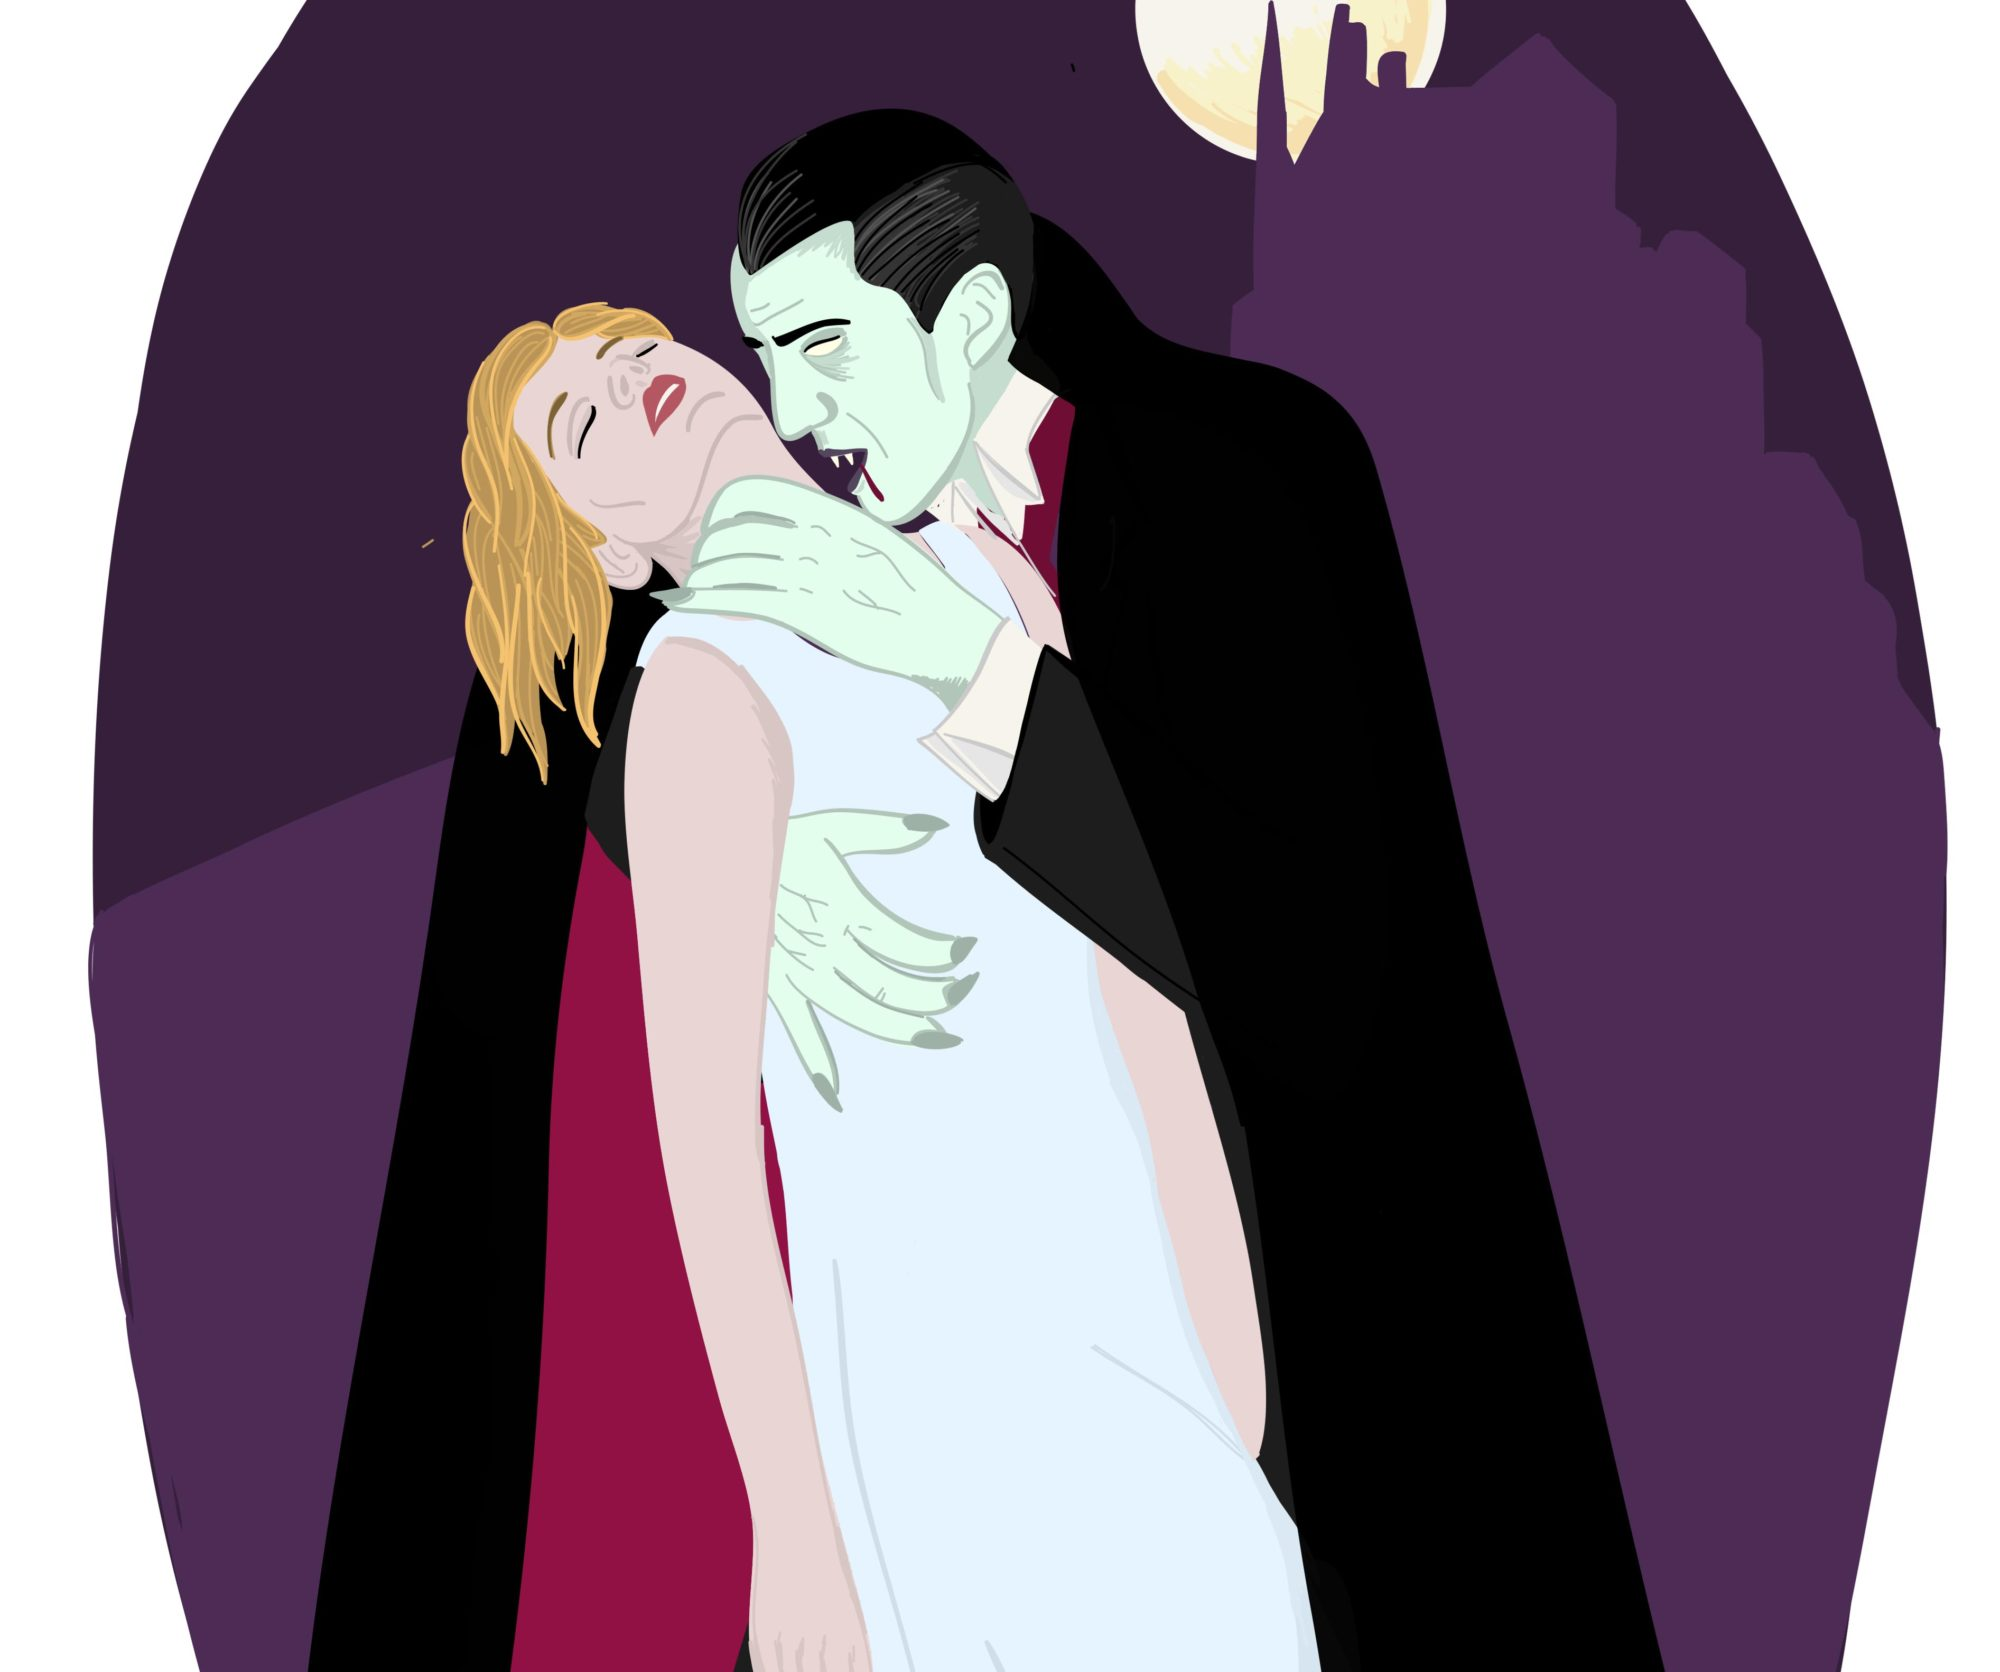 Illustration of Dracula